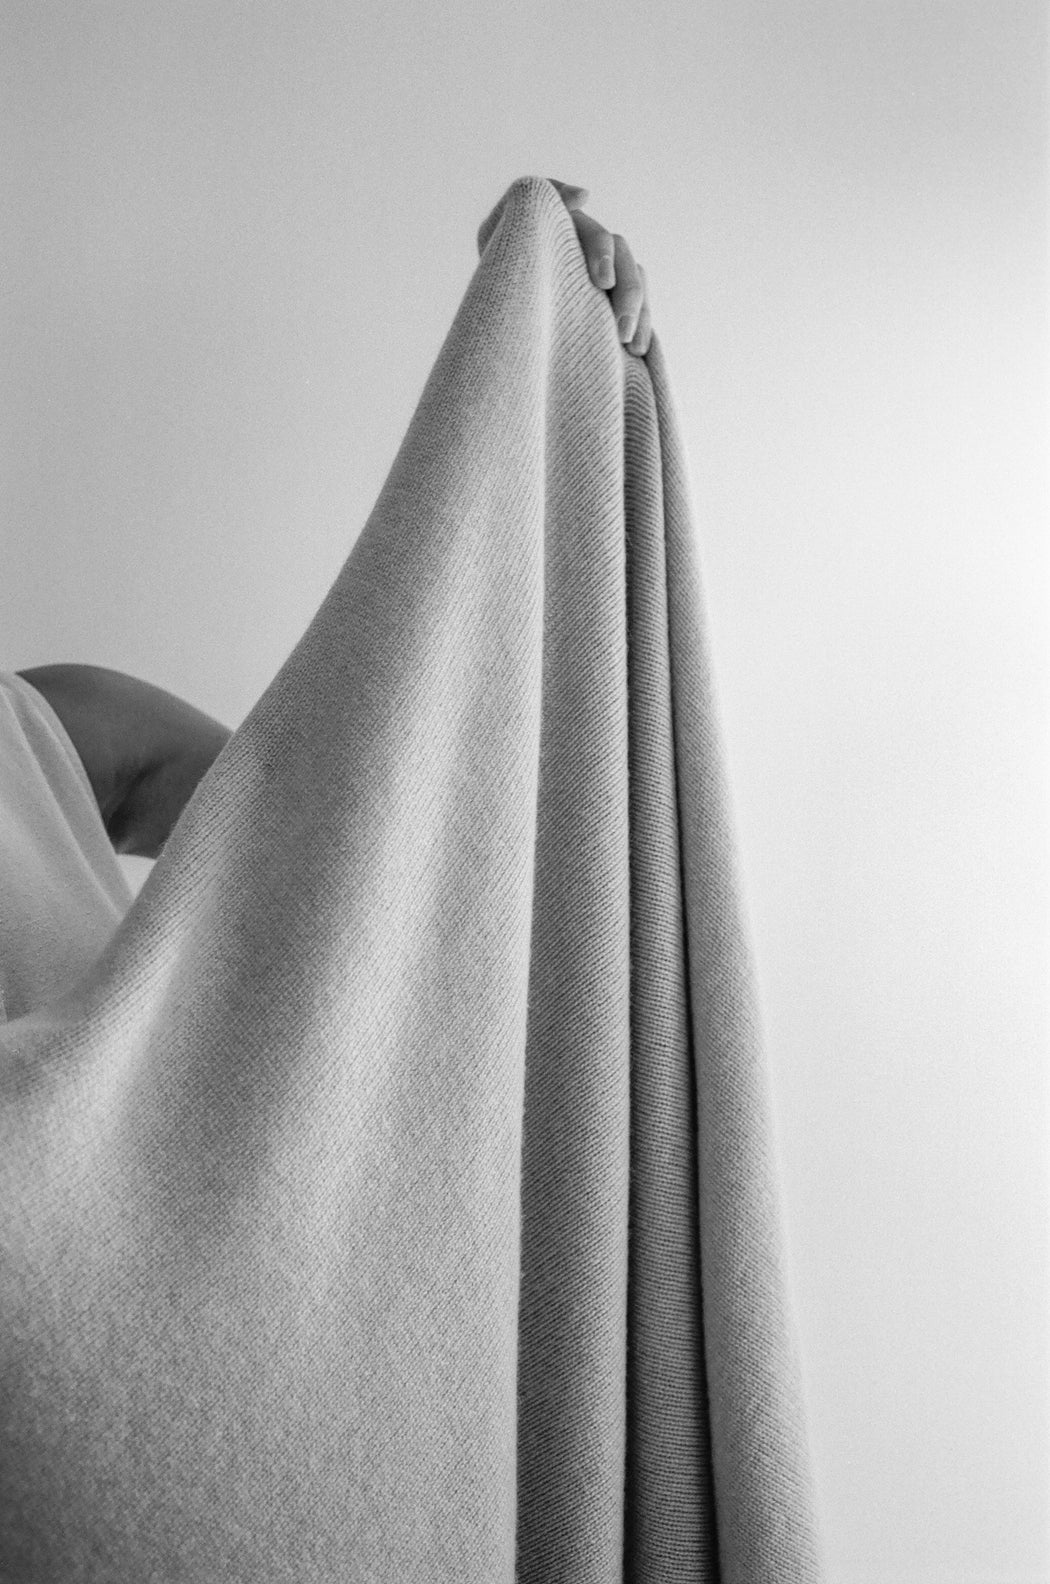 Bespoke Oversized Cashmere Throw - Custom Colors Made to Order (8-Week Lead Time)